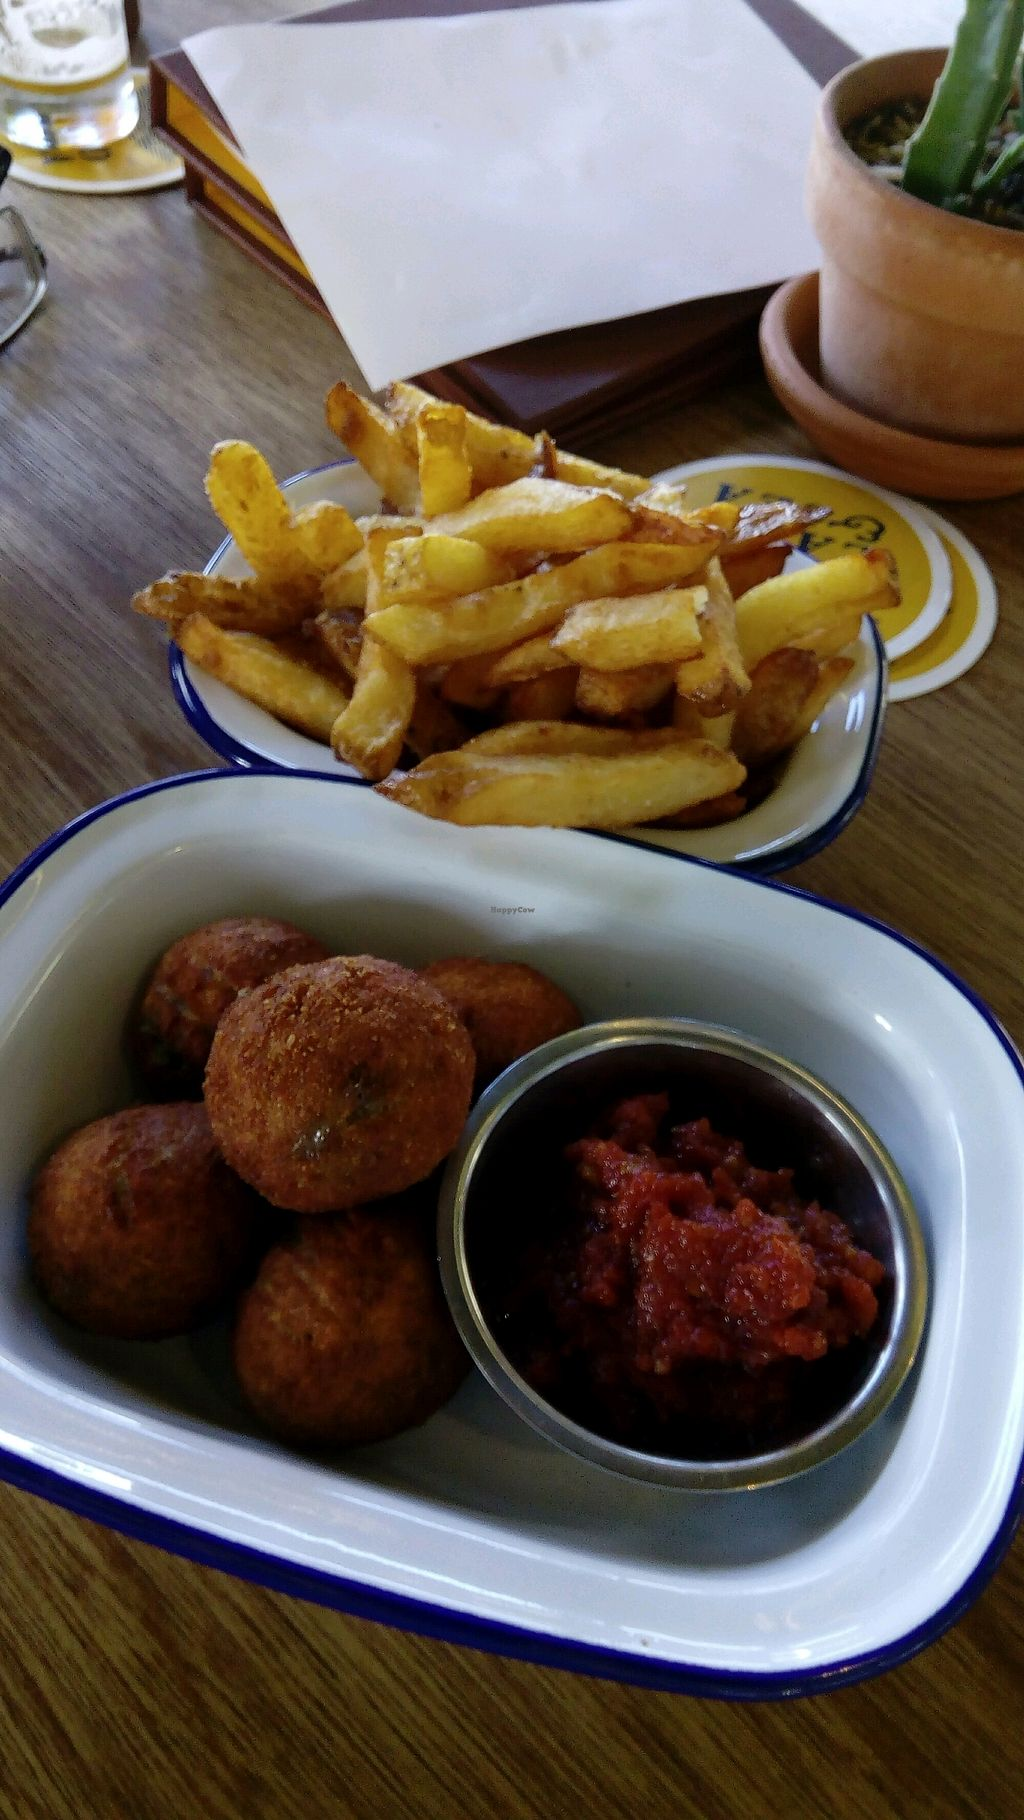 """Photo of Land & Sea Brewery  by <a href=""""/members/profile/heather6thsense"""">heather6thsense</a> <br/>hot chips, tomato relish and arancini balls <br/> March 23, 2018  - <a href='/contact/abuse/image/112297/374694'>Report</a>"""